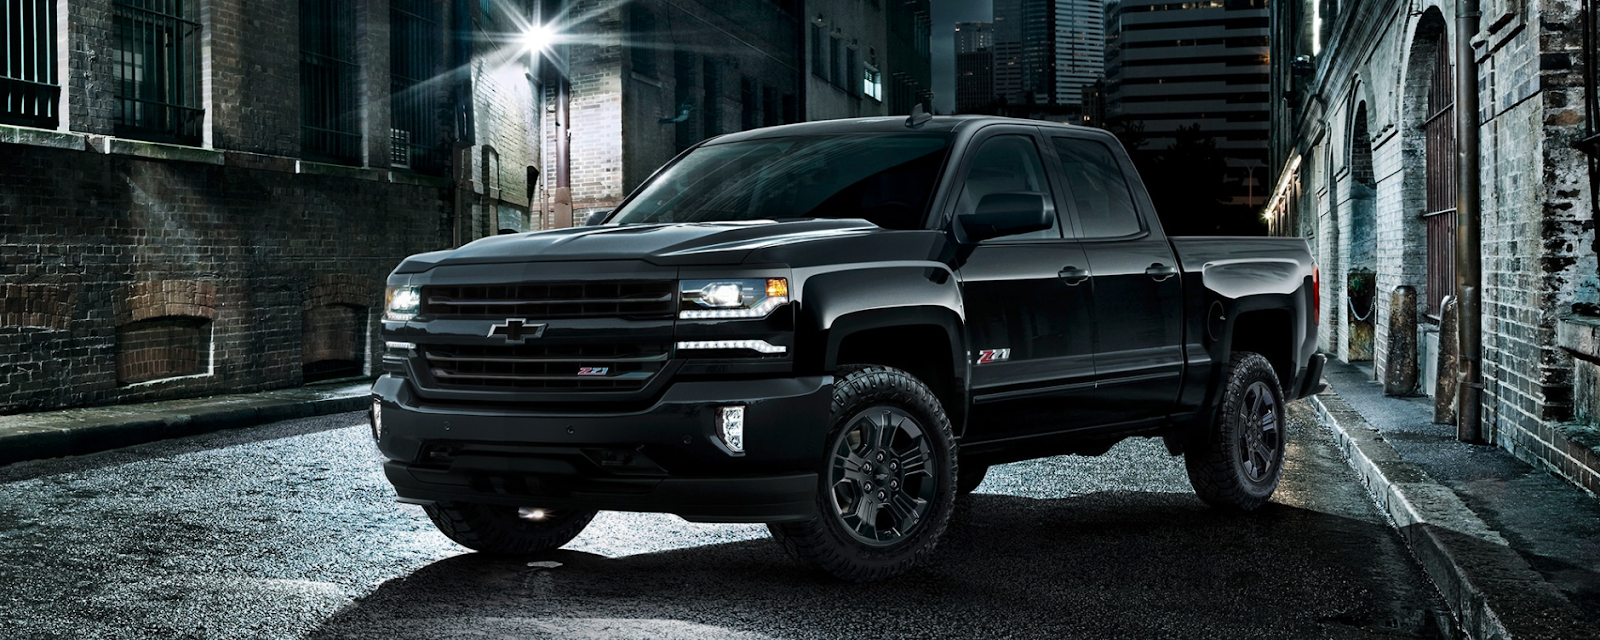 Are You Afraid Of The Dark Hopefully Not Because Midnight Edition Silverado Is A Sight To Behold All Black Everything Design Demands Your